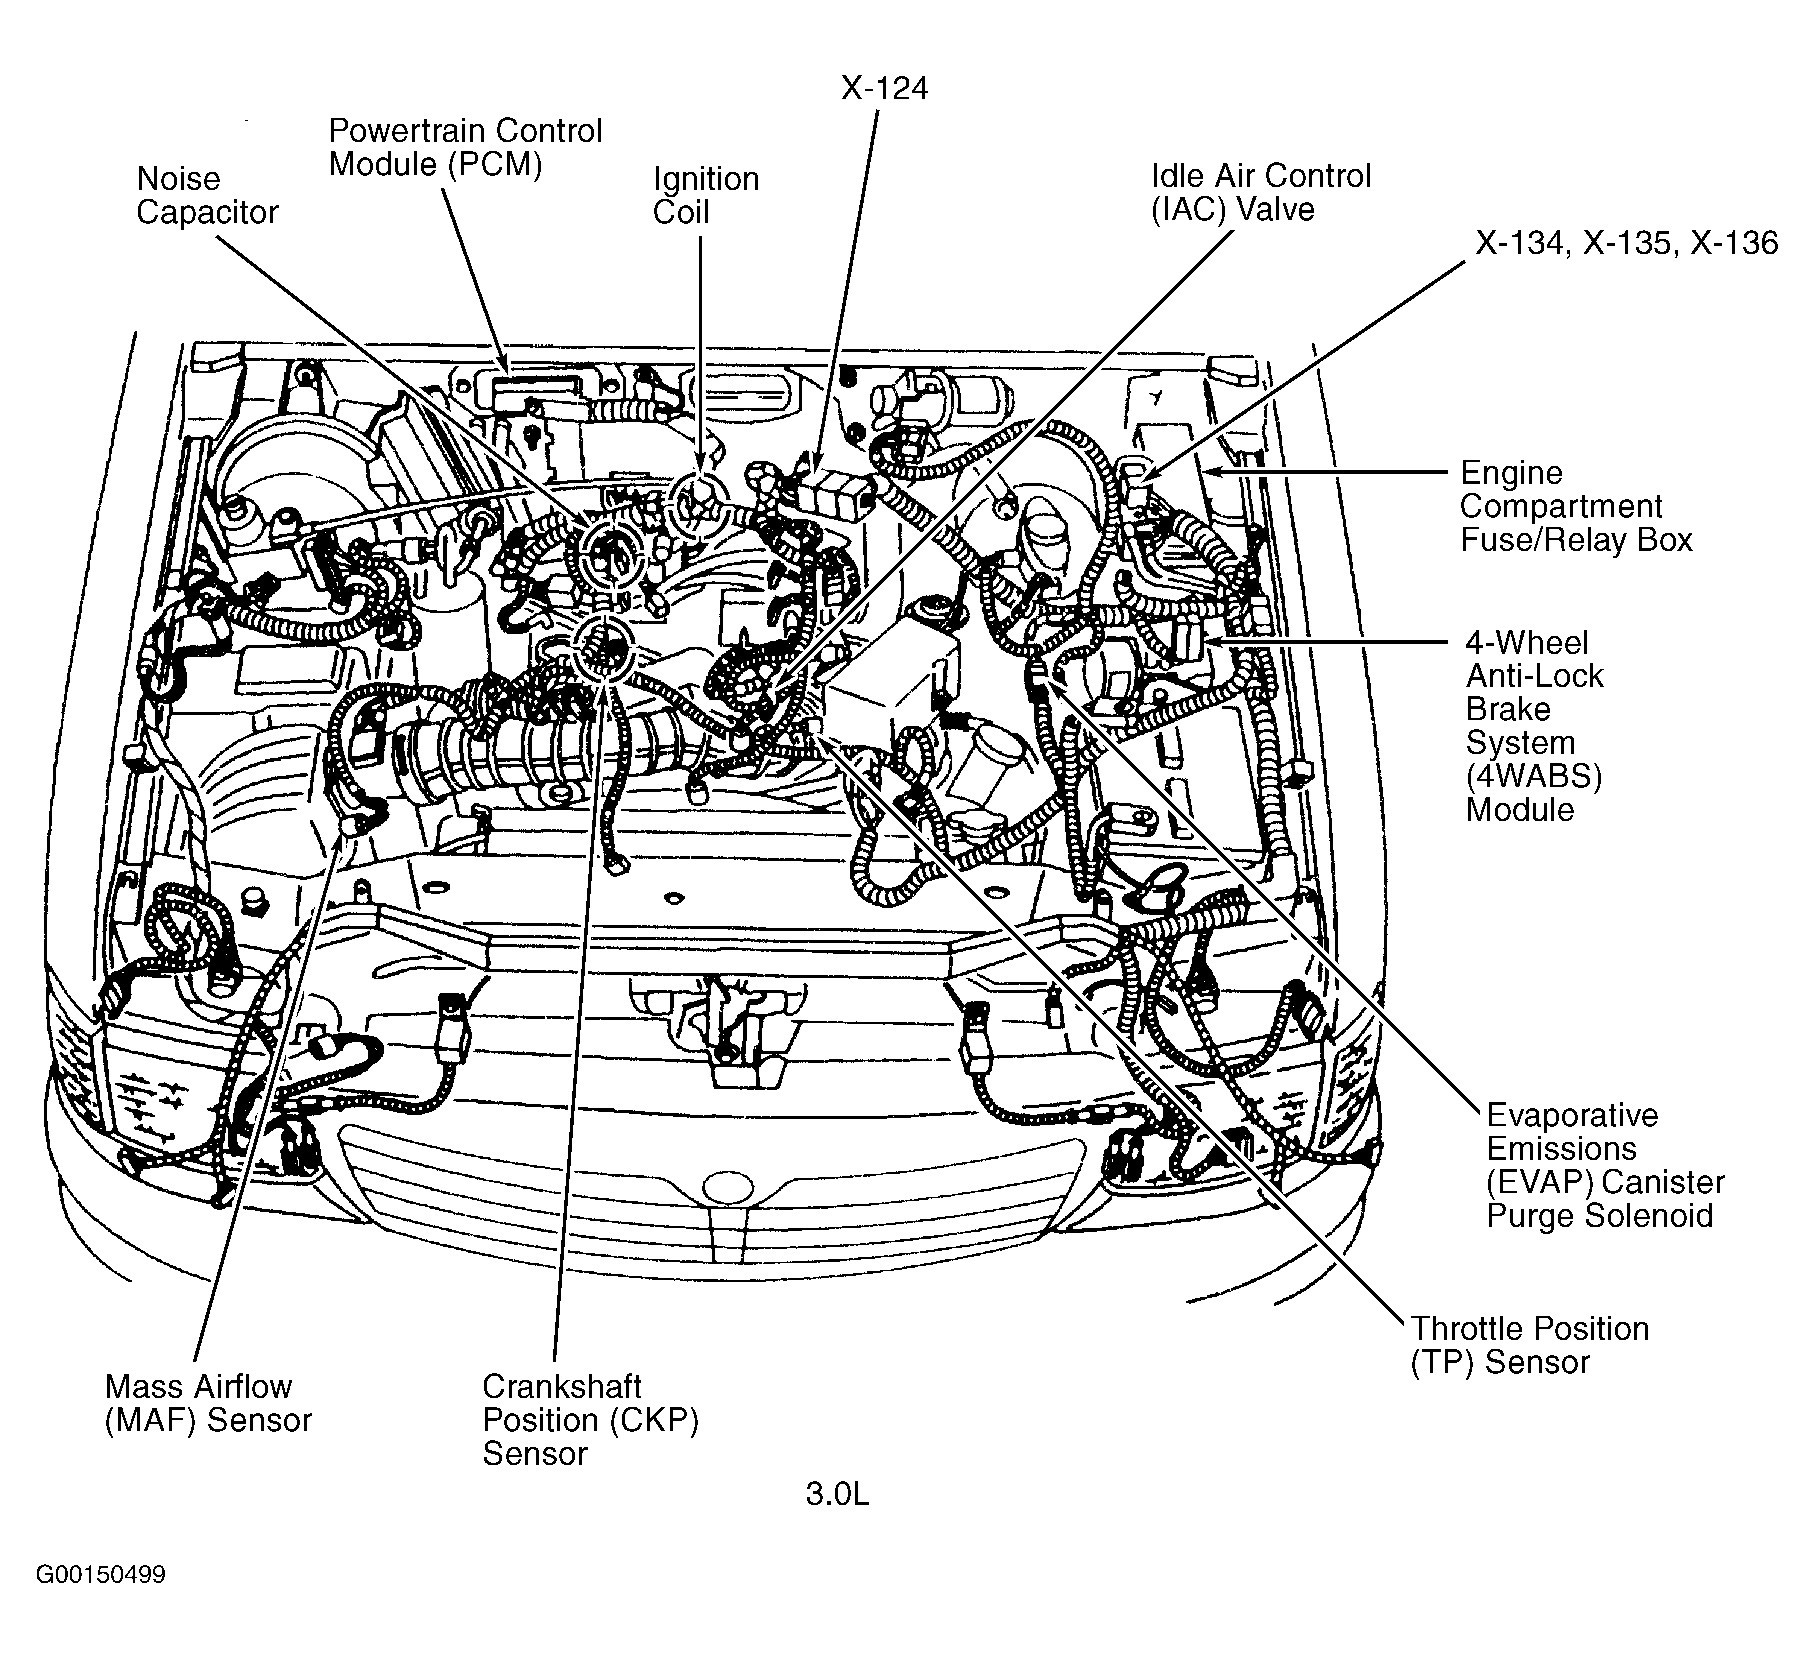 2004 ford Escape Engine Diagram Parts Engine Diagram Of 2004 ford Escape Engine Diagram